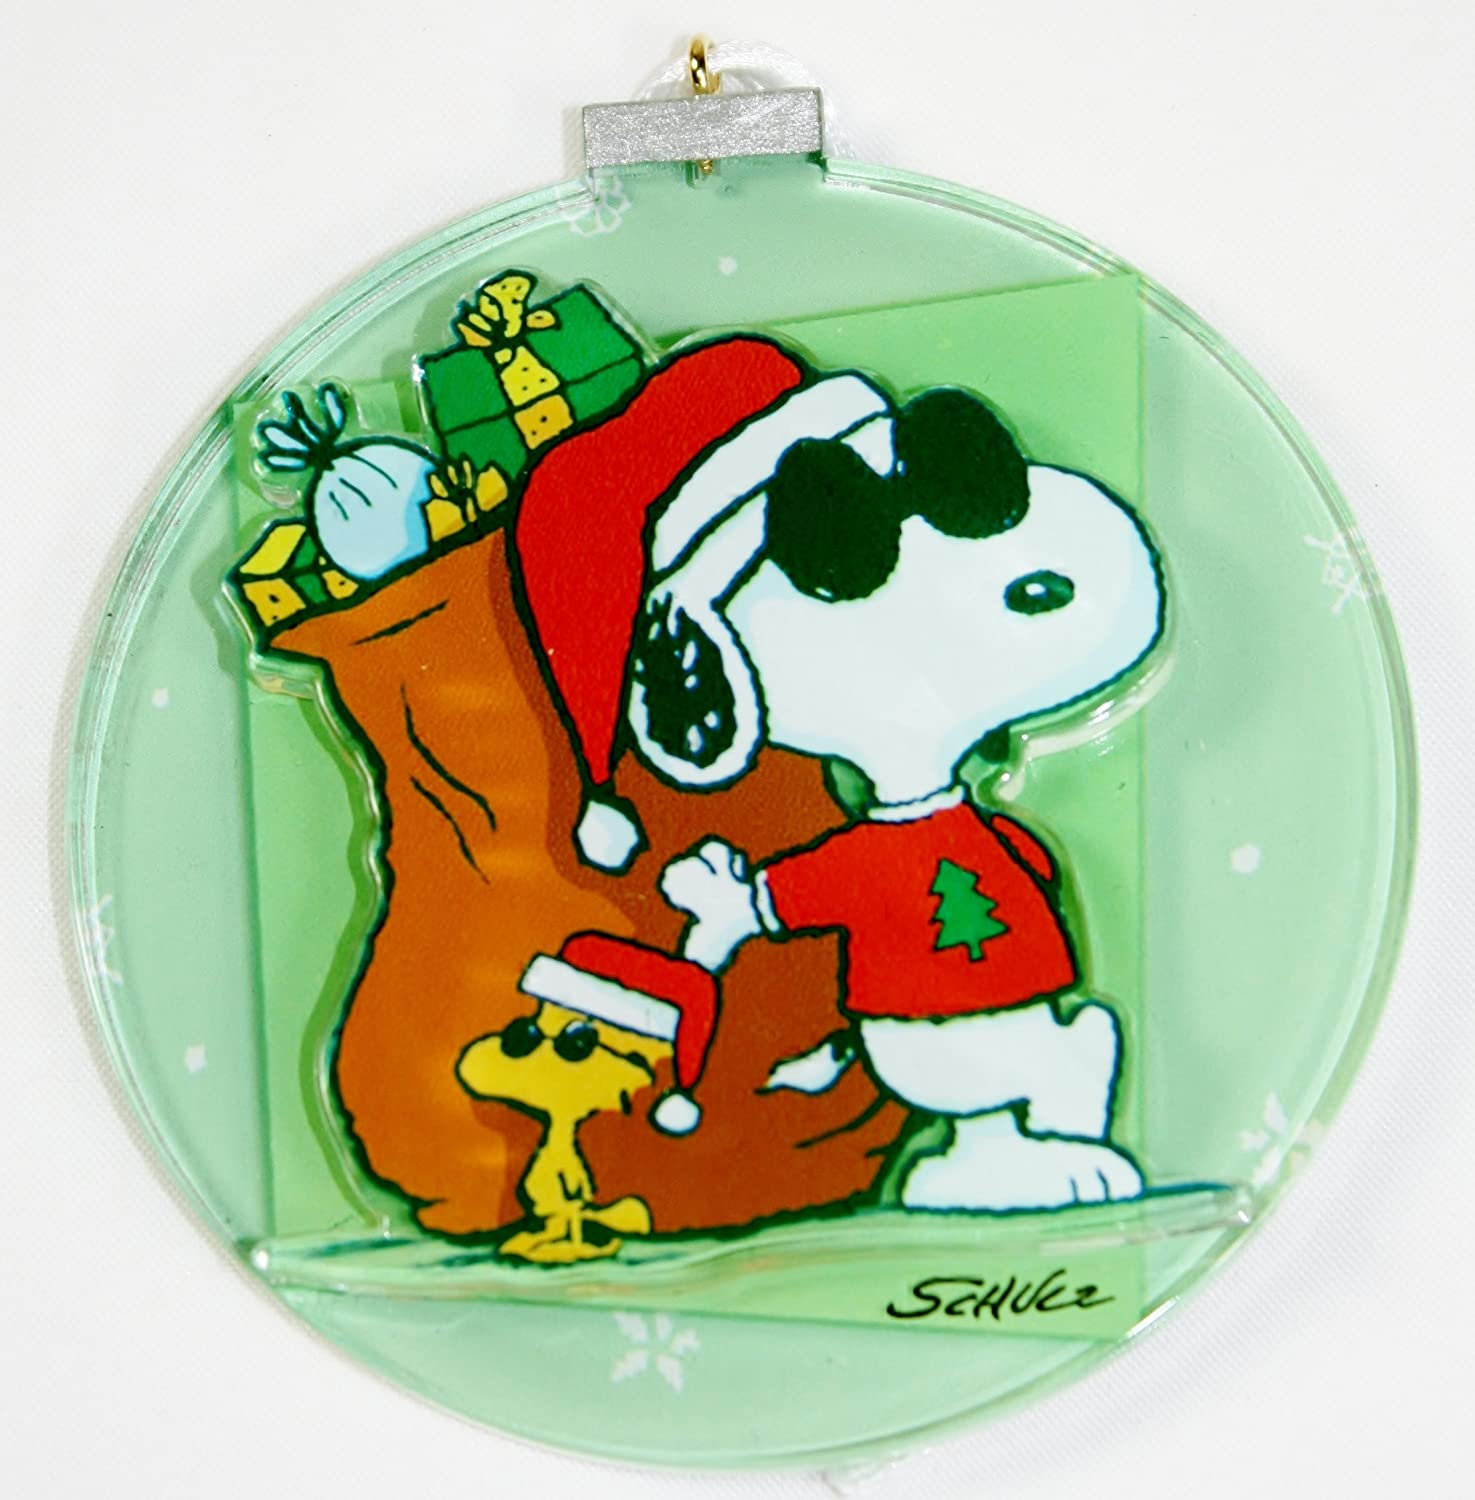 Amazon.com: Peanuts Snoopy and Woodstock Christmas Ornament ...